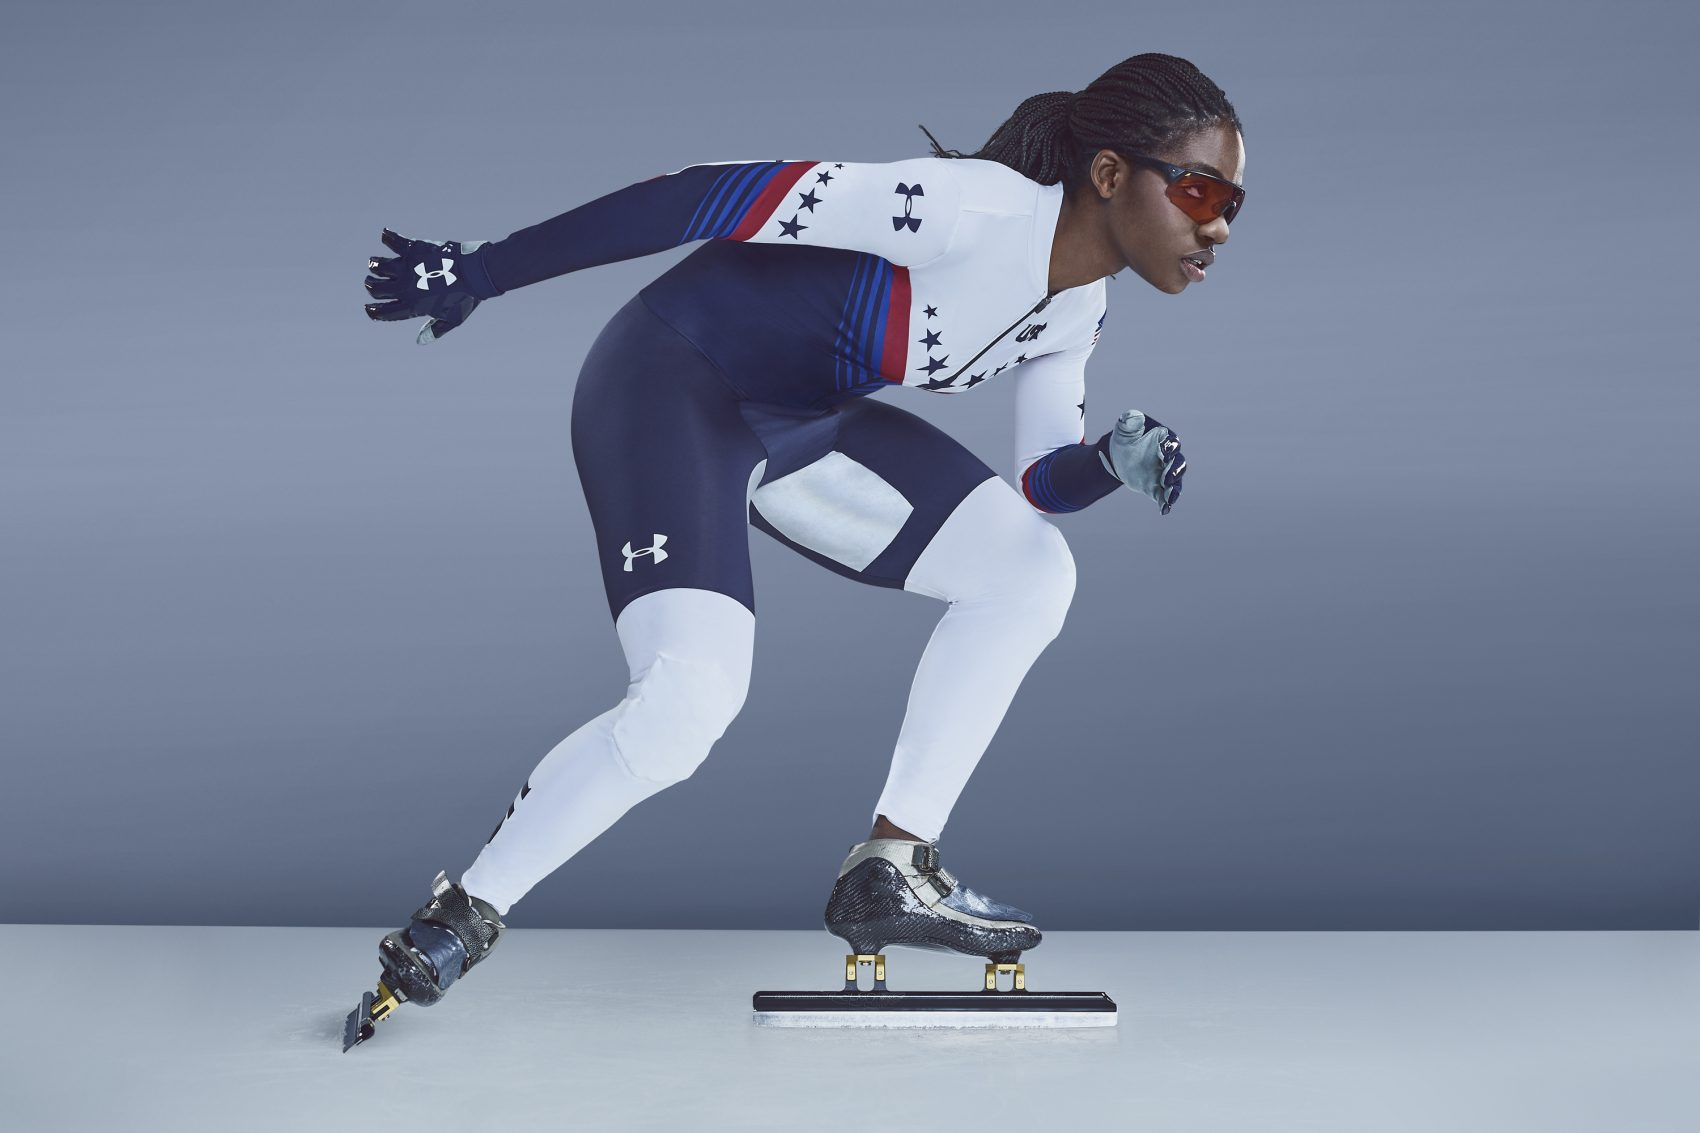 Short track speedskater Maame Biney, who has qualified for the 2018 Winter Olympics in Pyeongchang. (Courtesy Under Armour)